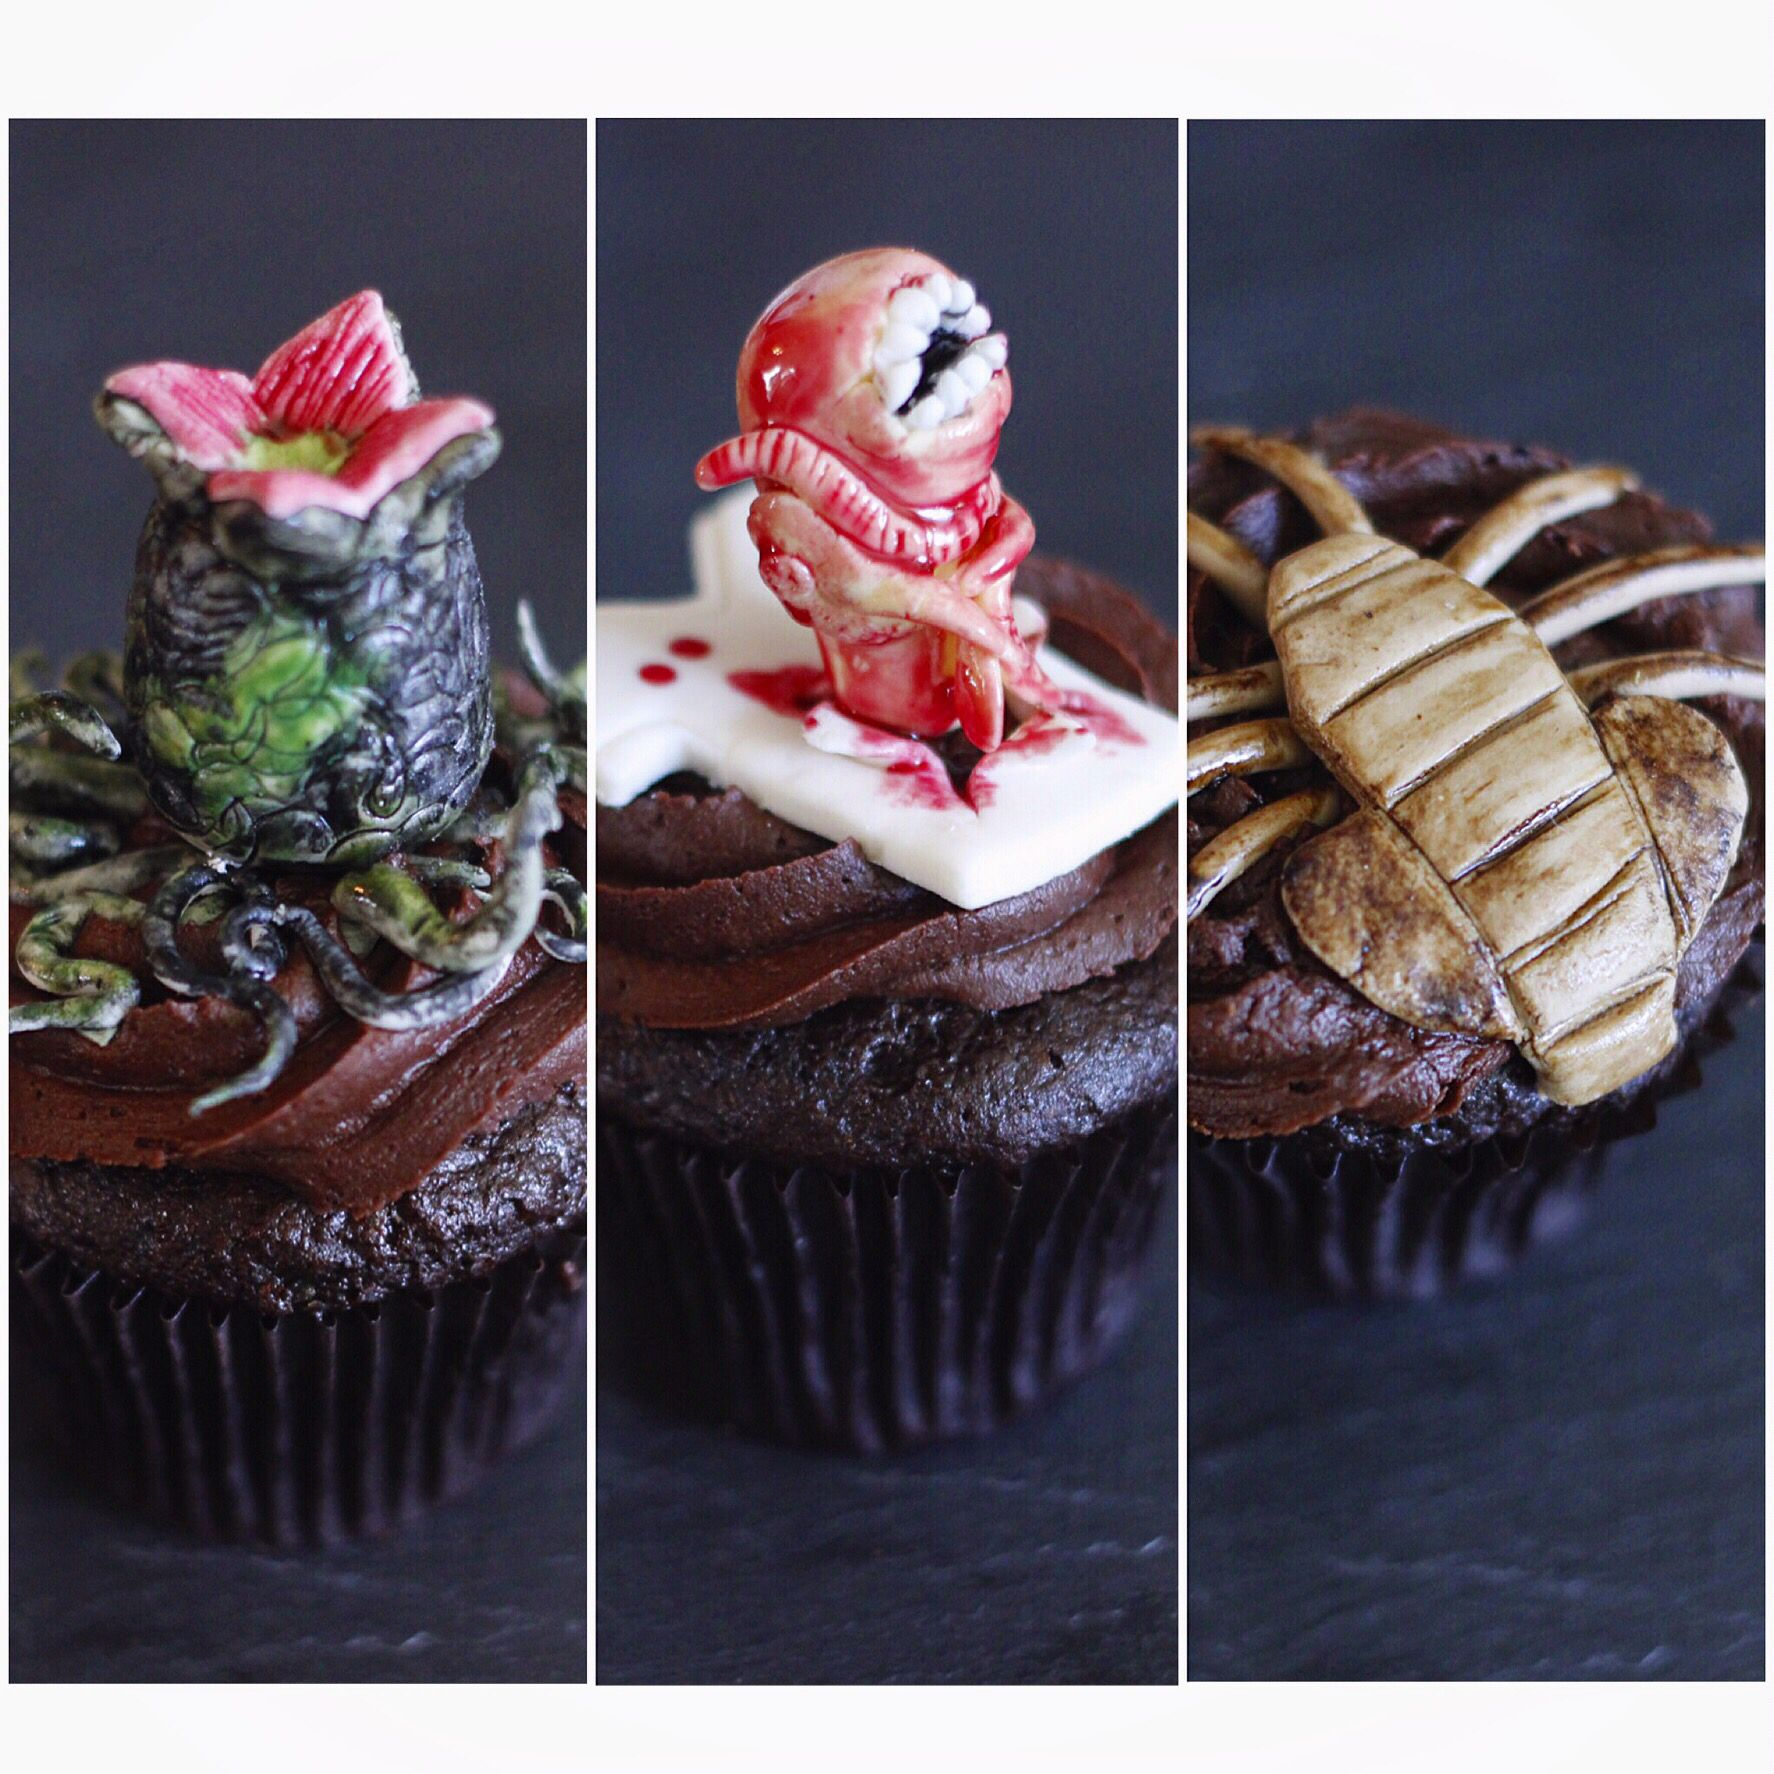 Alien Movie Themed Cupcakes All Vegan Gluten Free Dairy Free Soy Free Non Gmo Naturally Dyed Dairy Free Food Soy Free